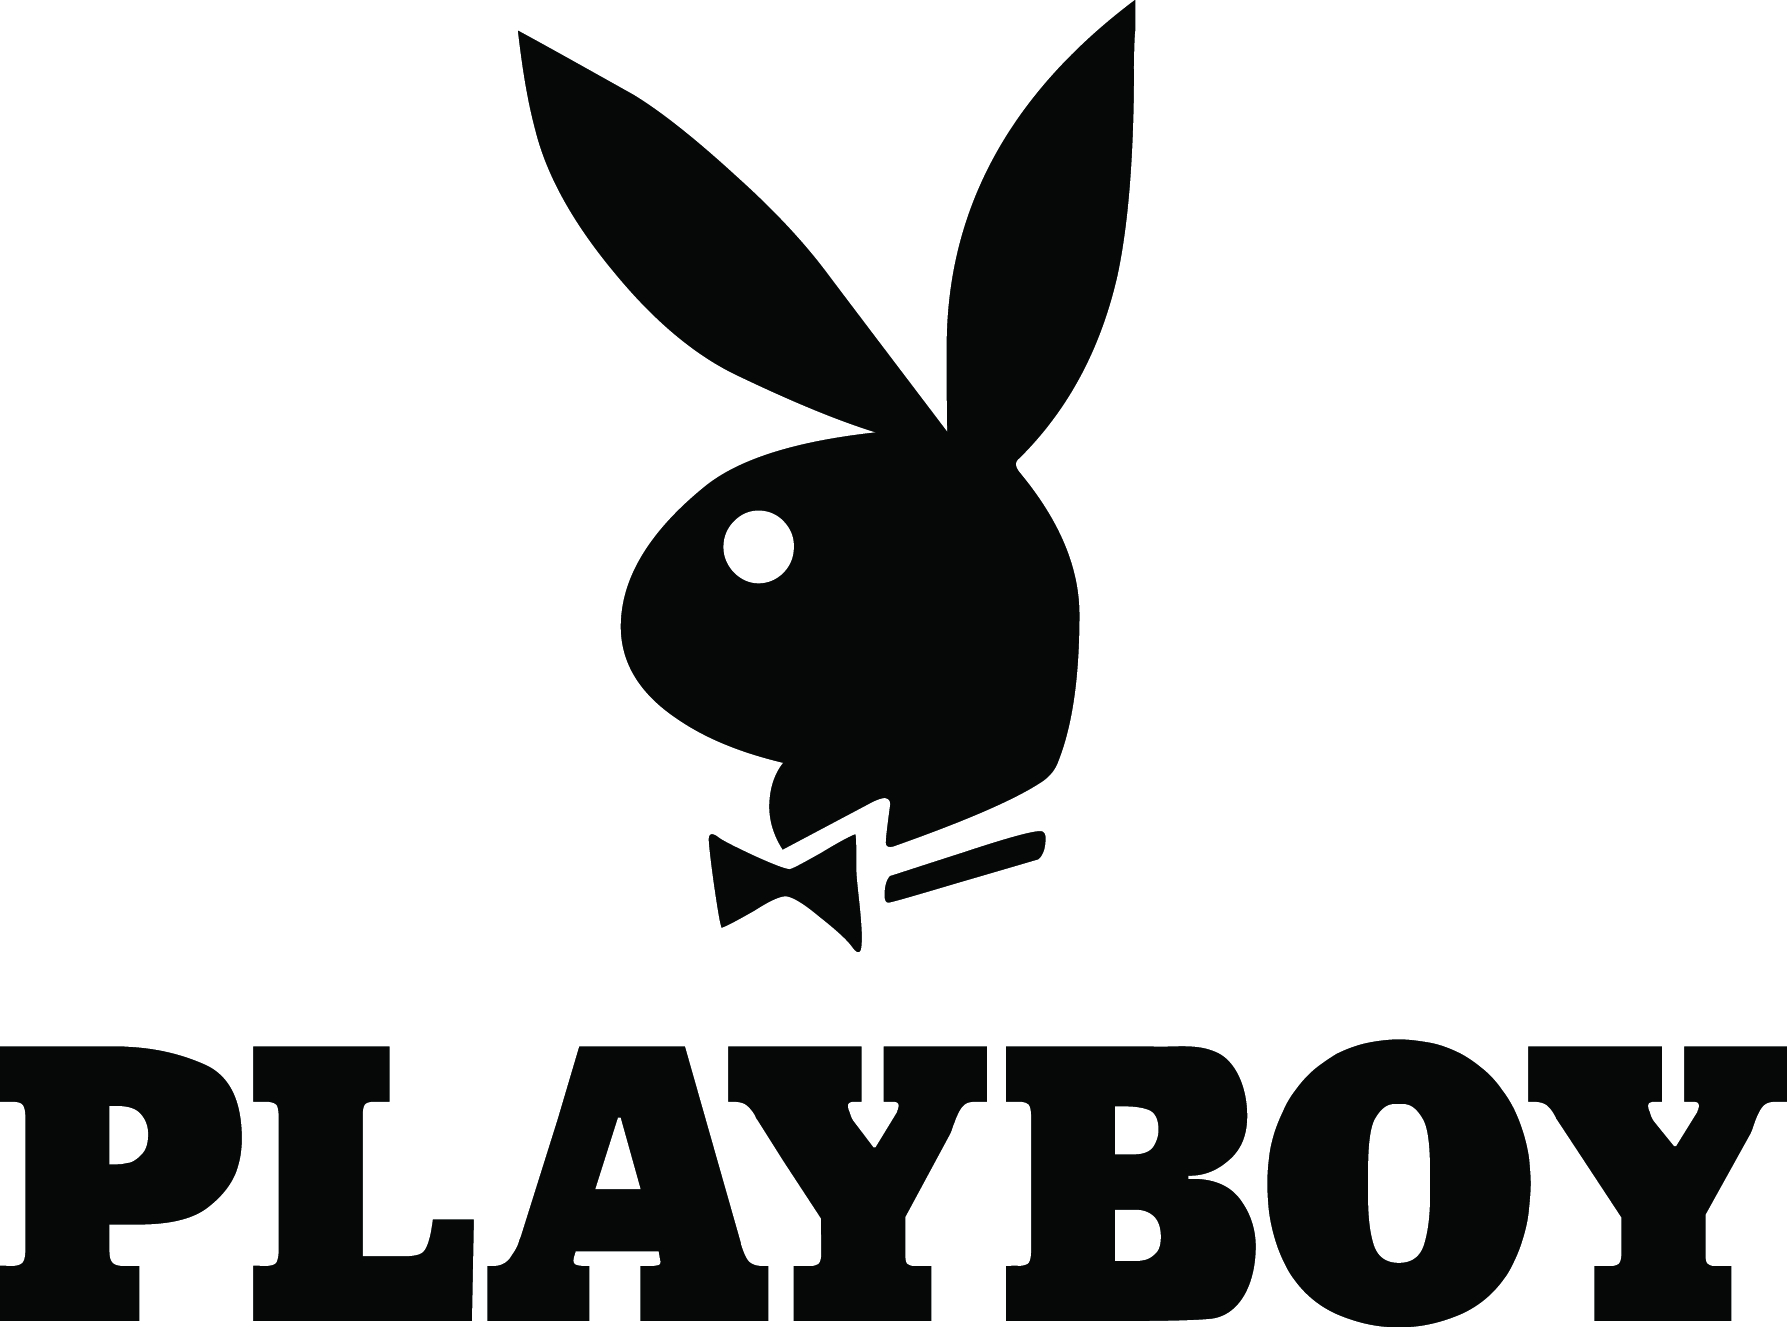 PLAYBOY SEXY LINGERIE T/C BOX